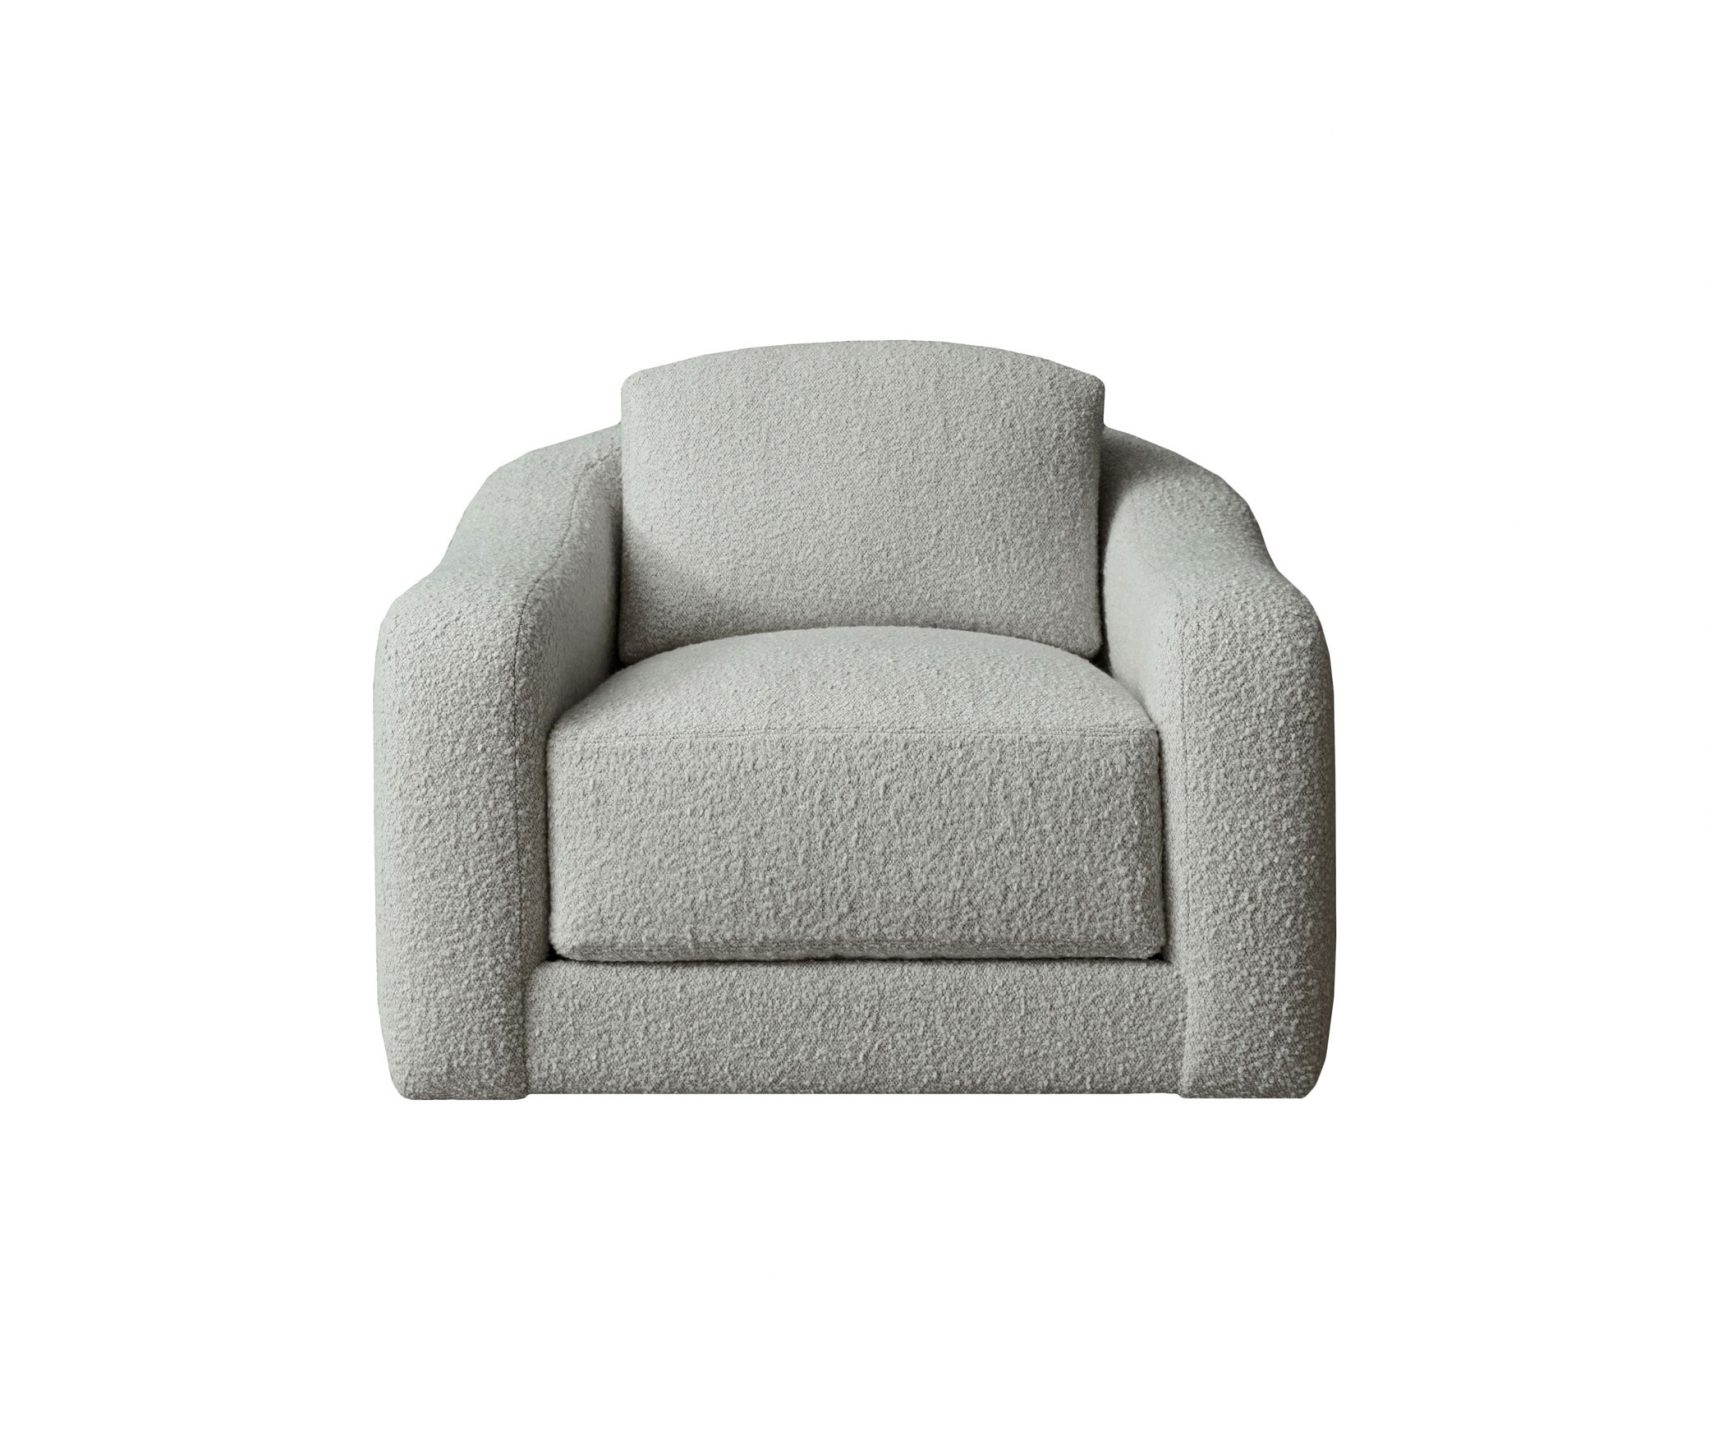 Profiles_Altamont-Swivel-Chair_int_products